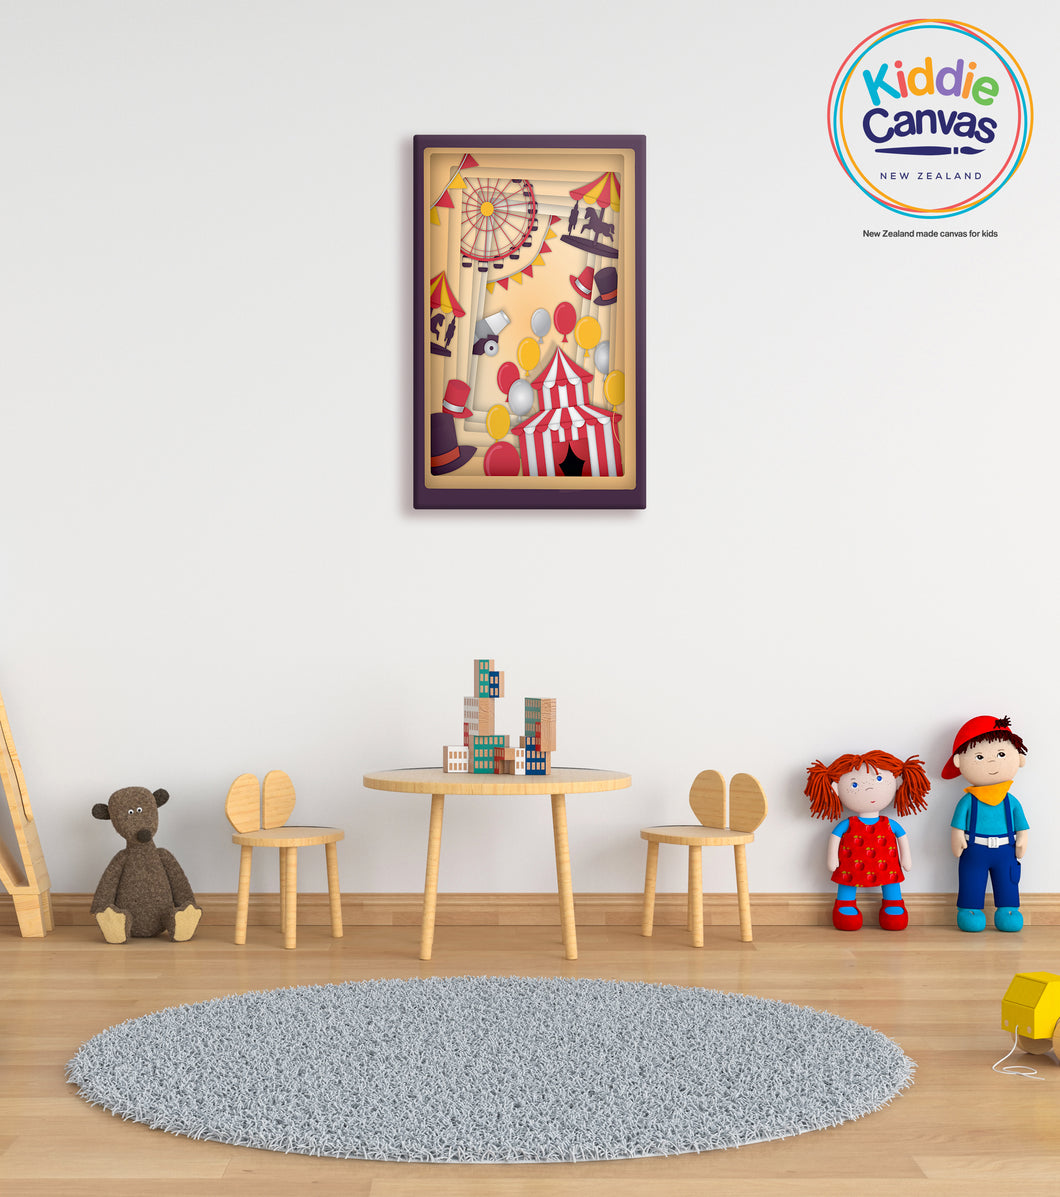 54. Papercut Carnival artwork - KIDS CANVAS - by Mina Crafts